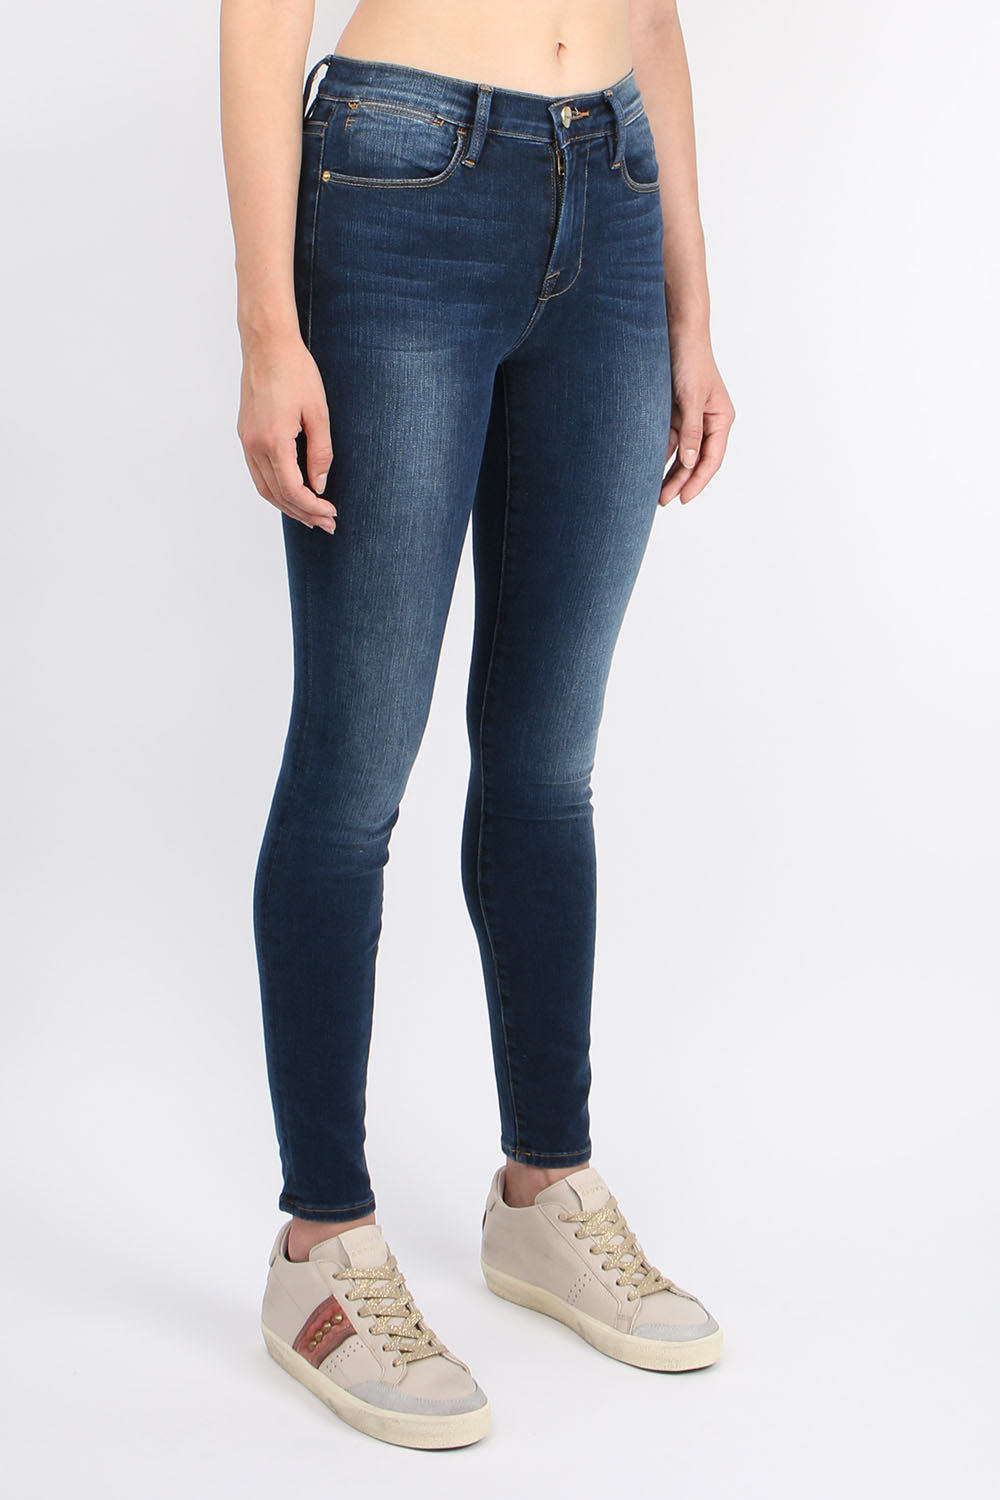 Frame Denim Le High Skinny Claredale